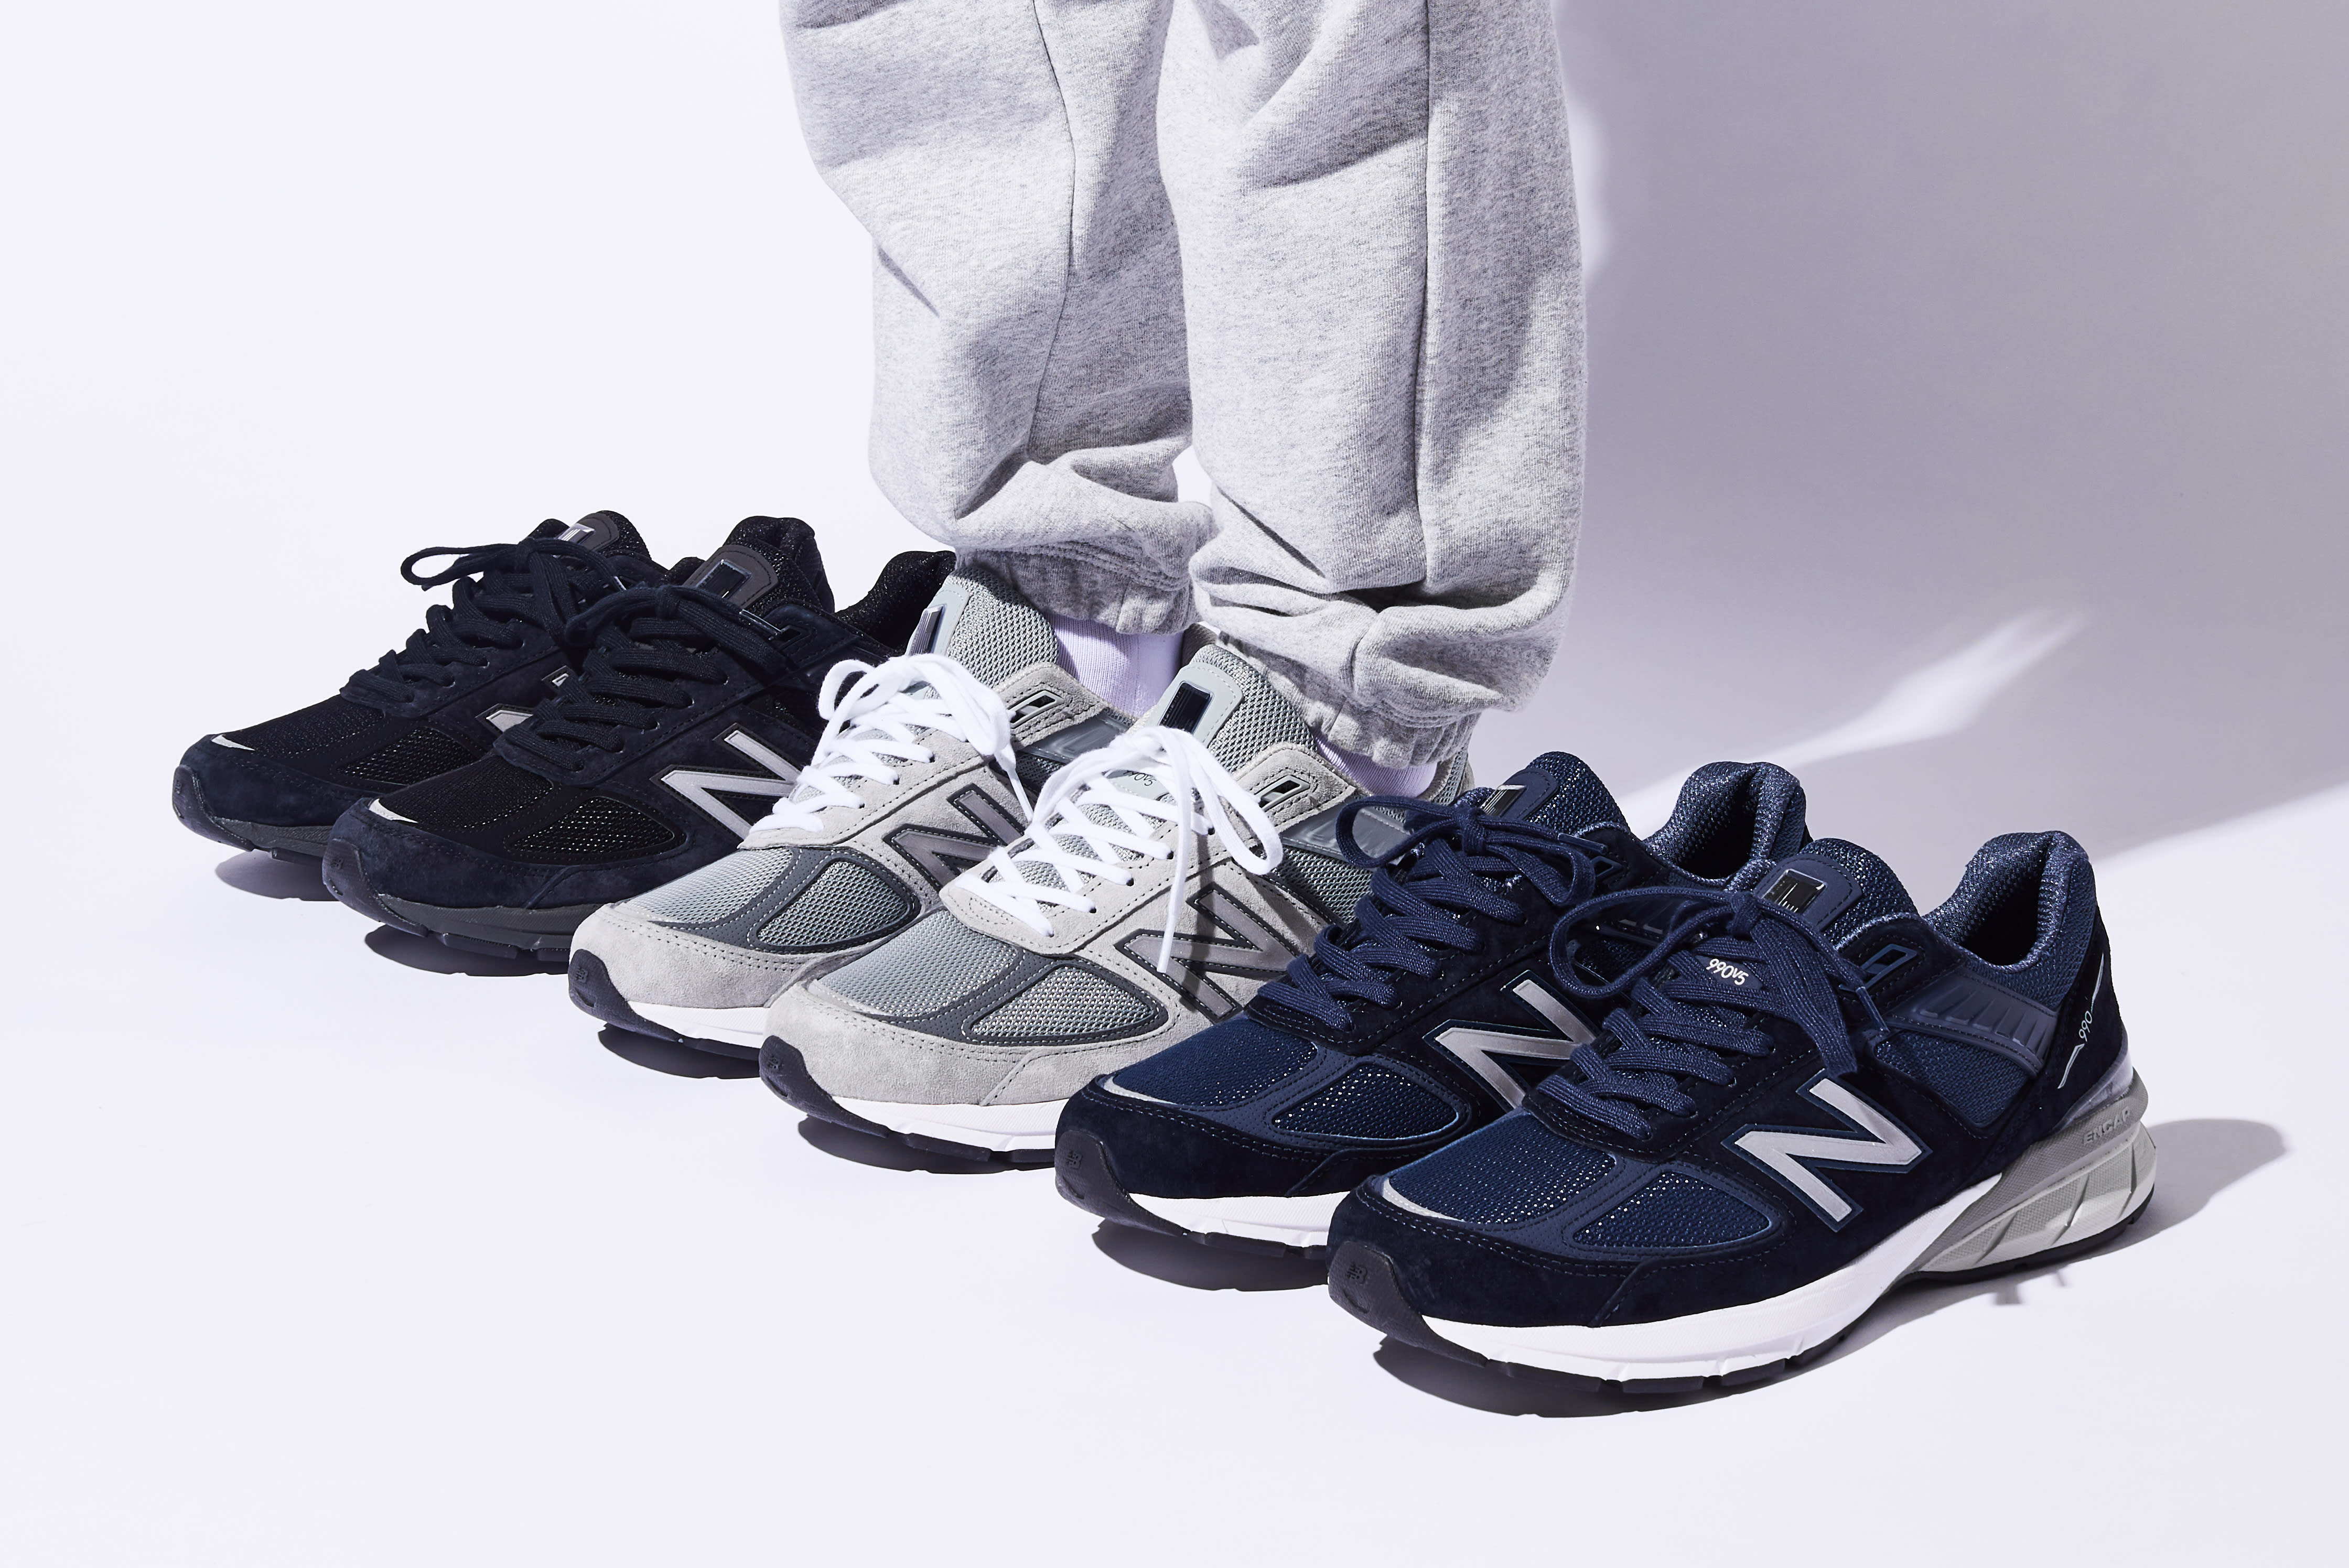 wide selection of designs wholesale sales amazon New Balance 990v5 Launching in Three Colorways - EUKICKS